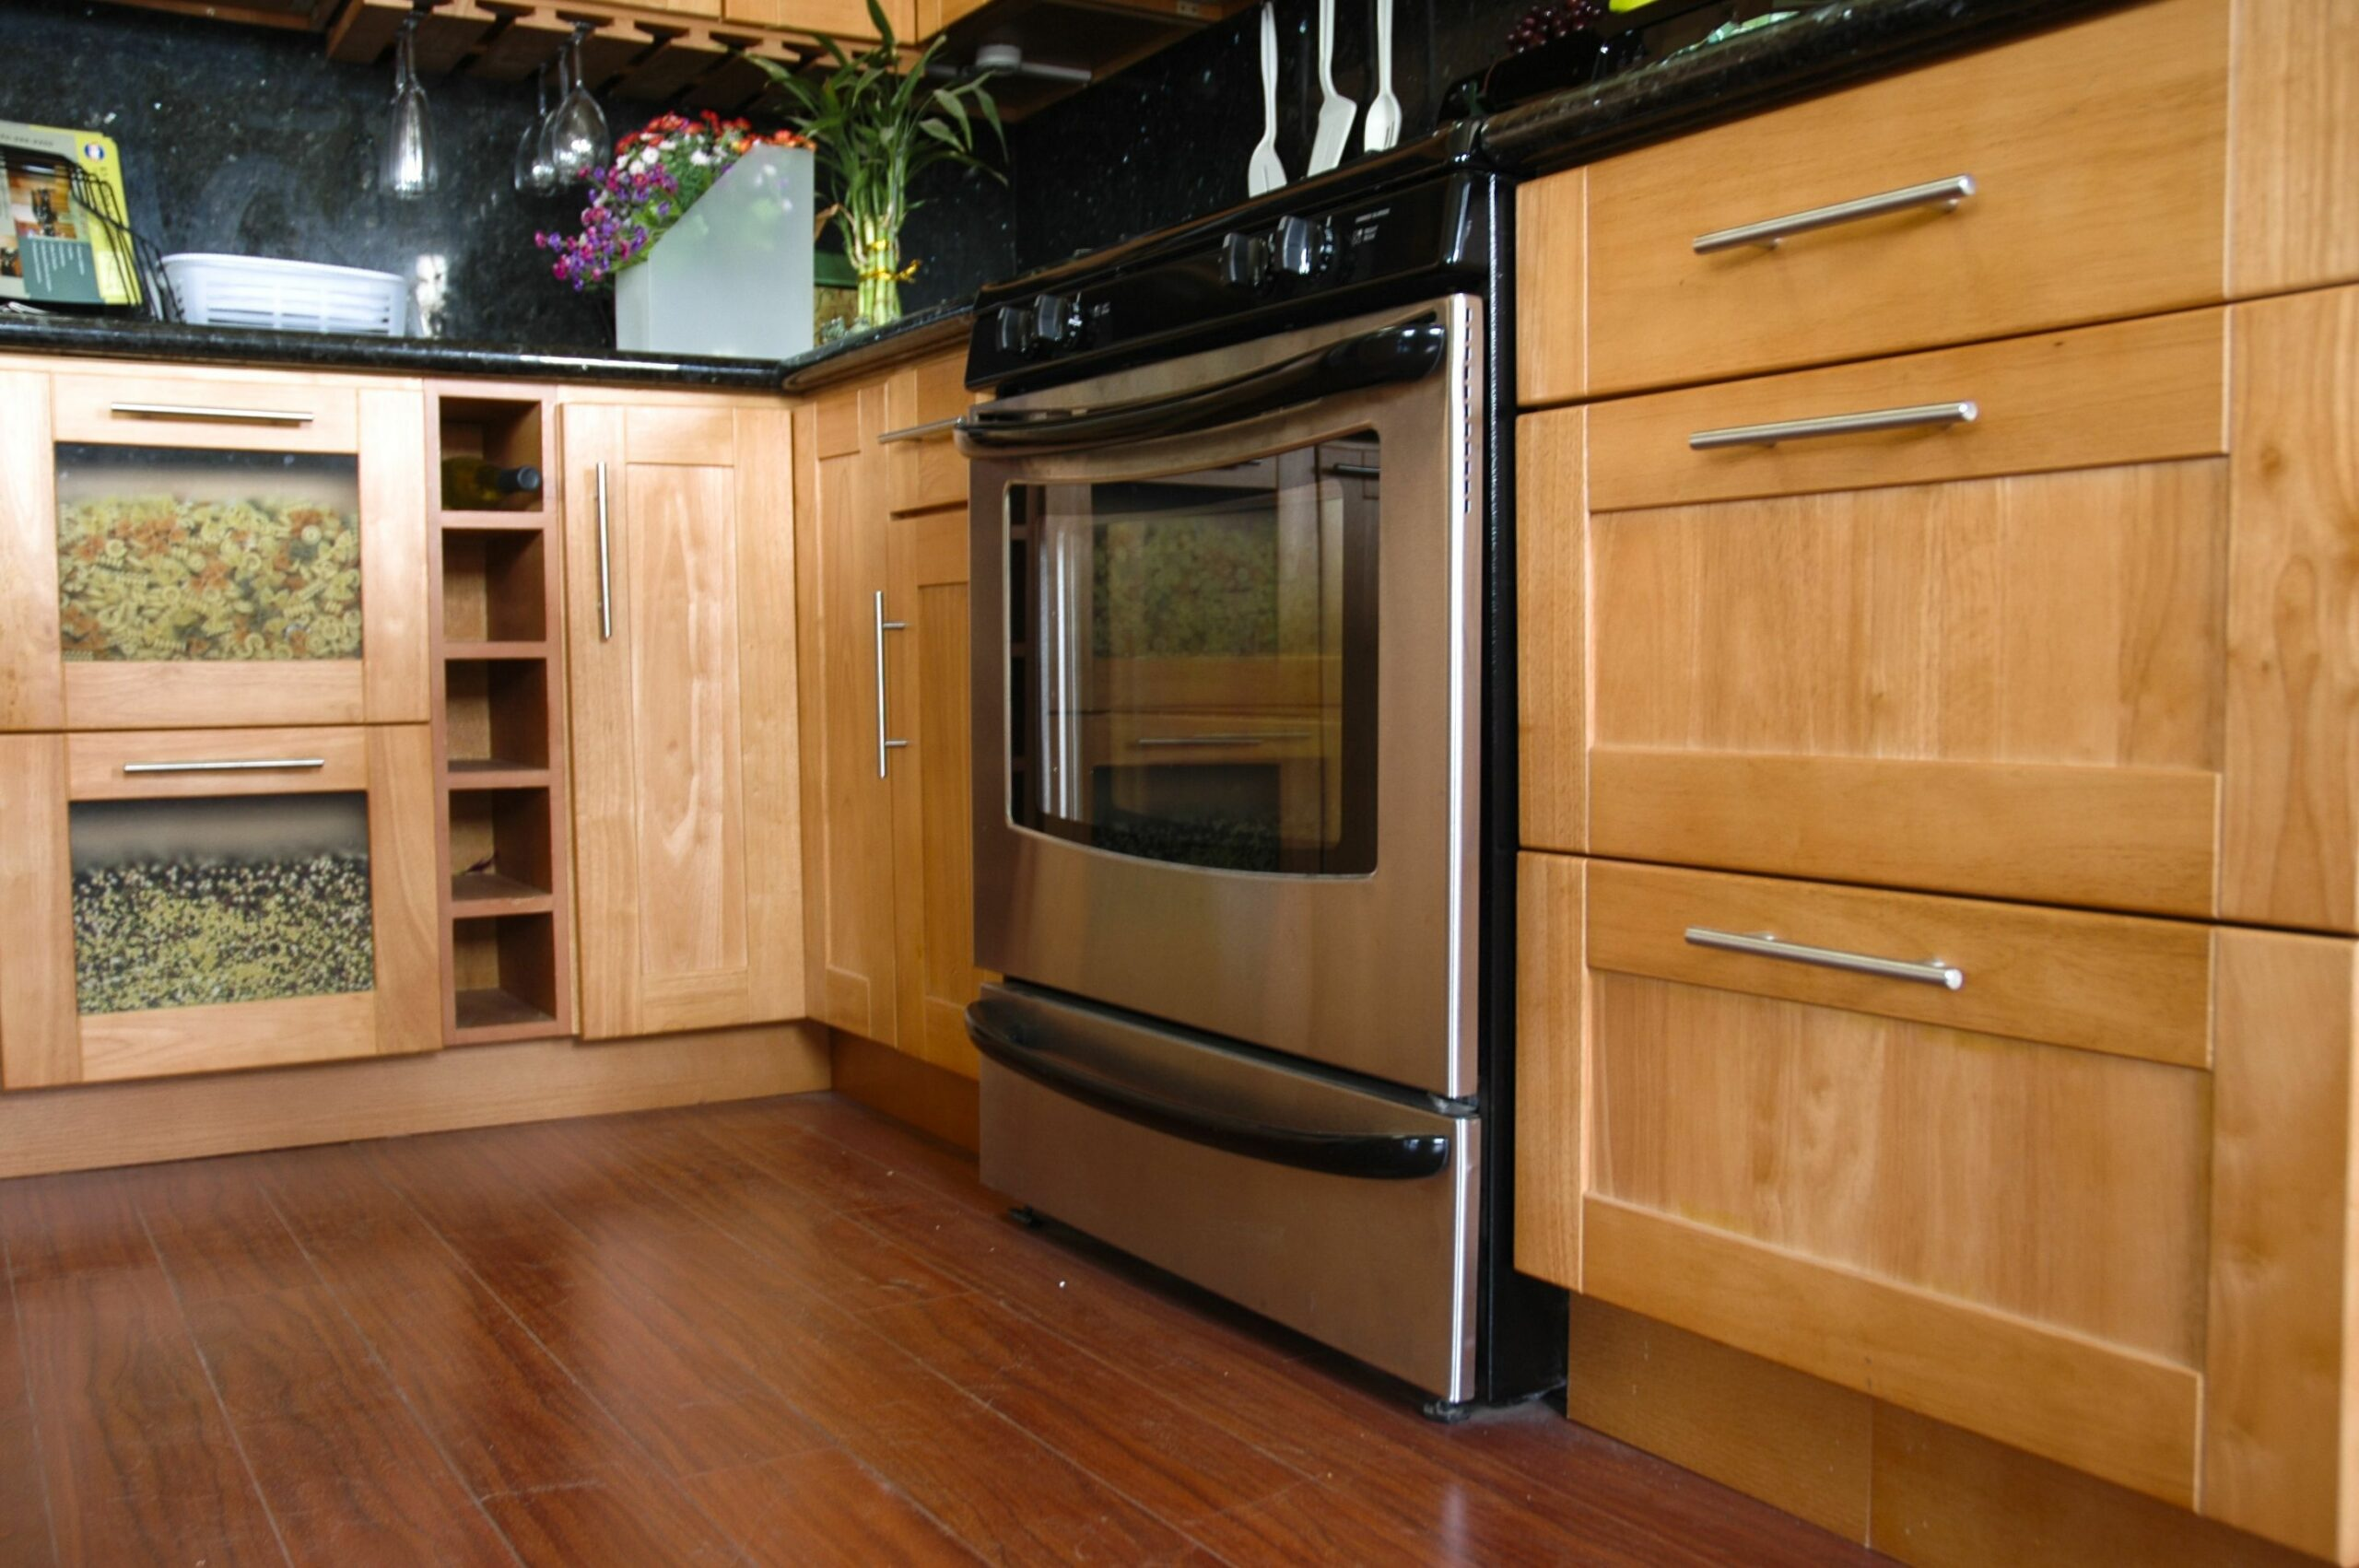 New And Used Kitchens For Sale